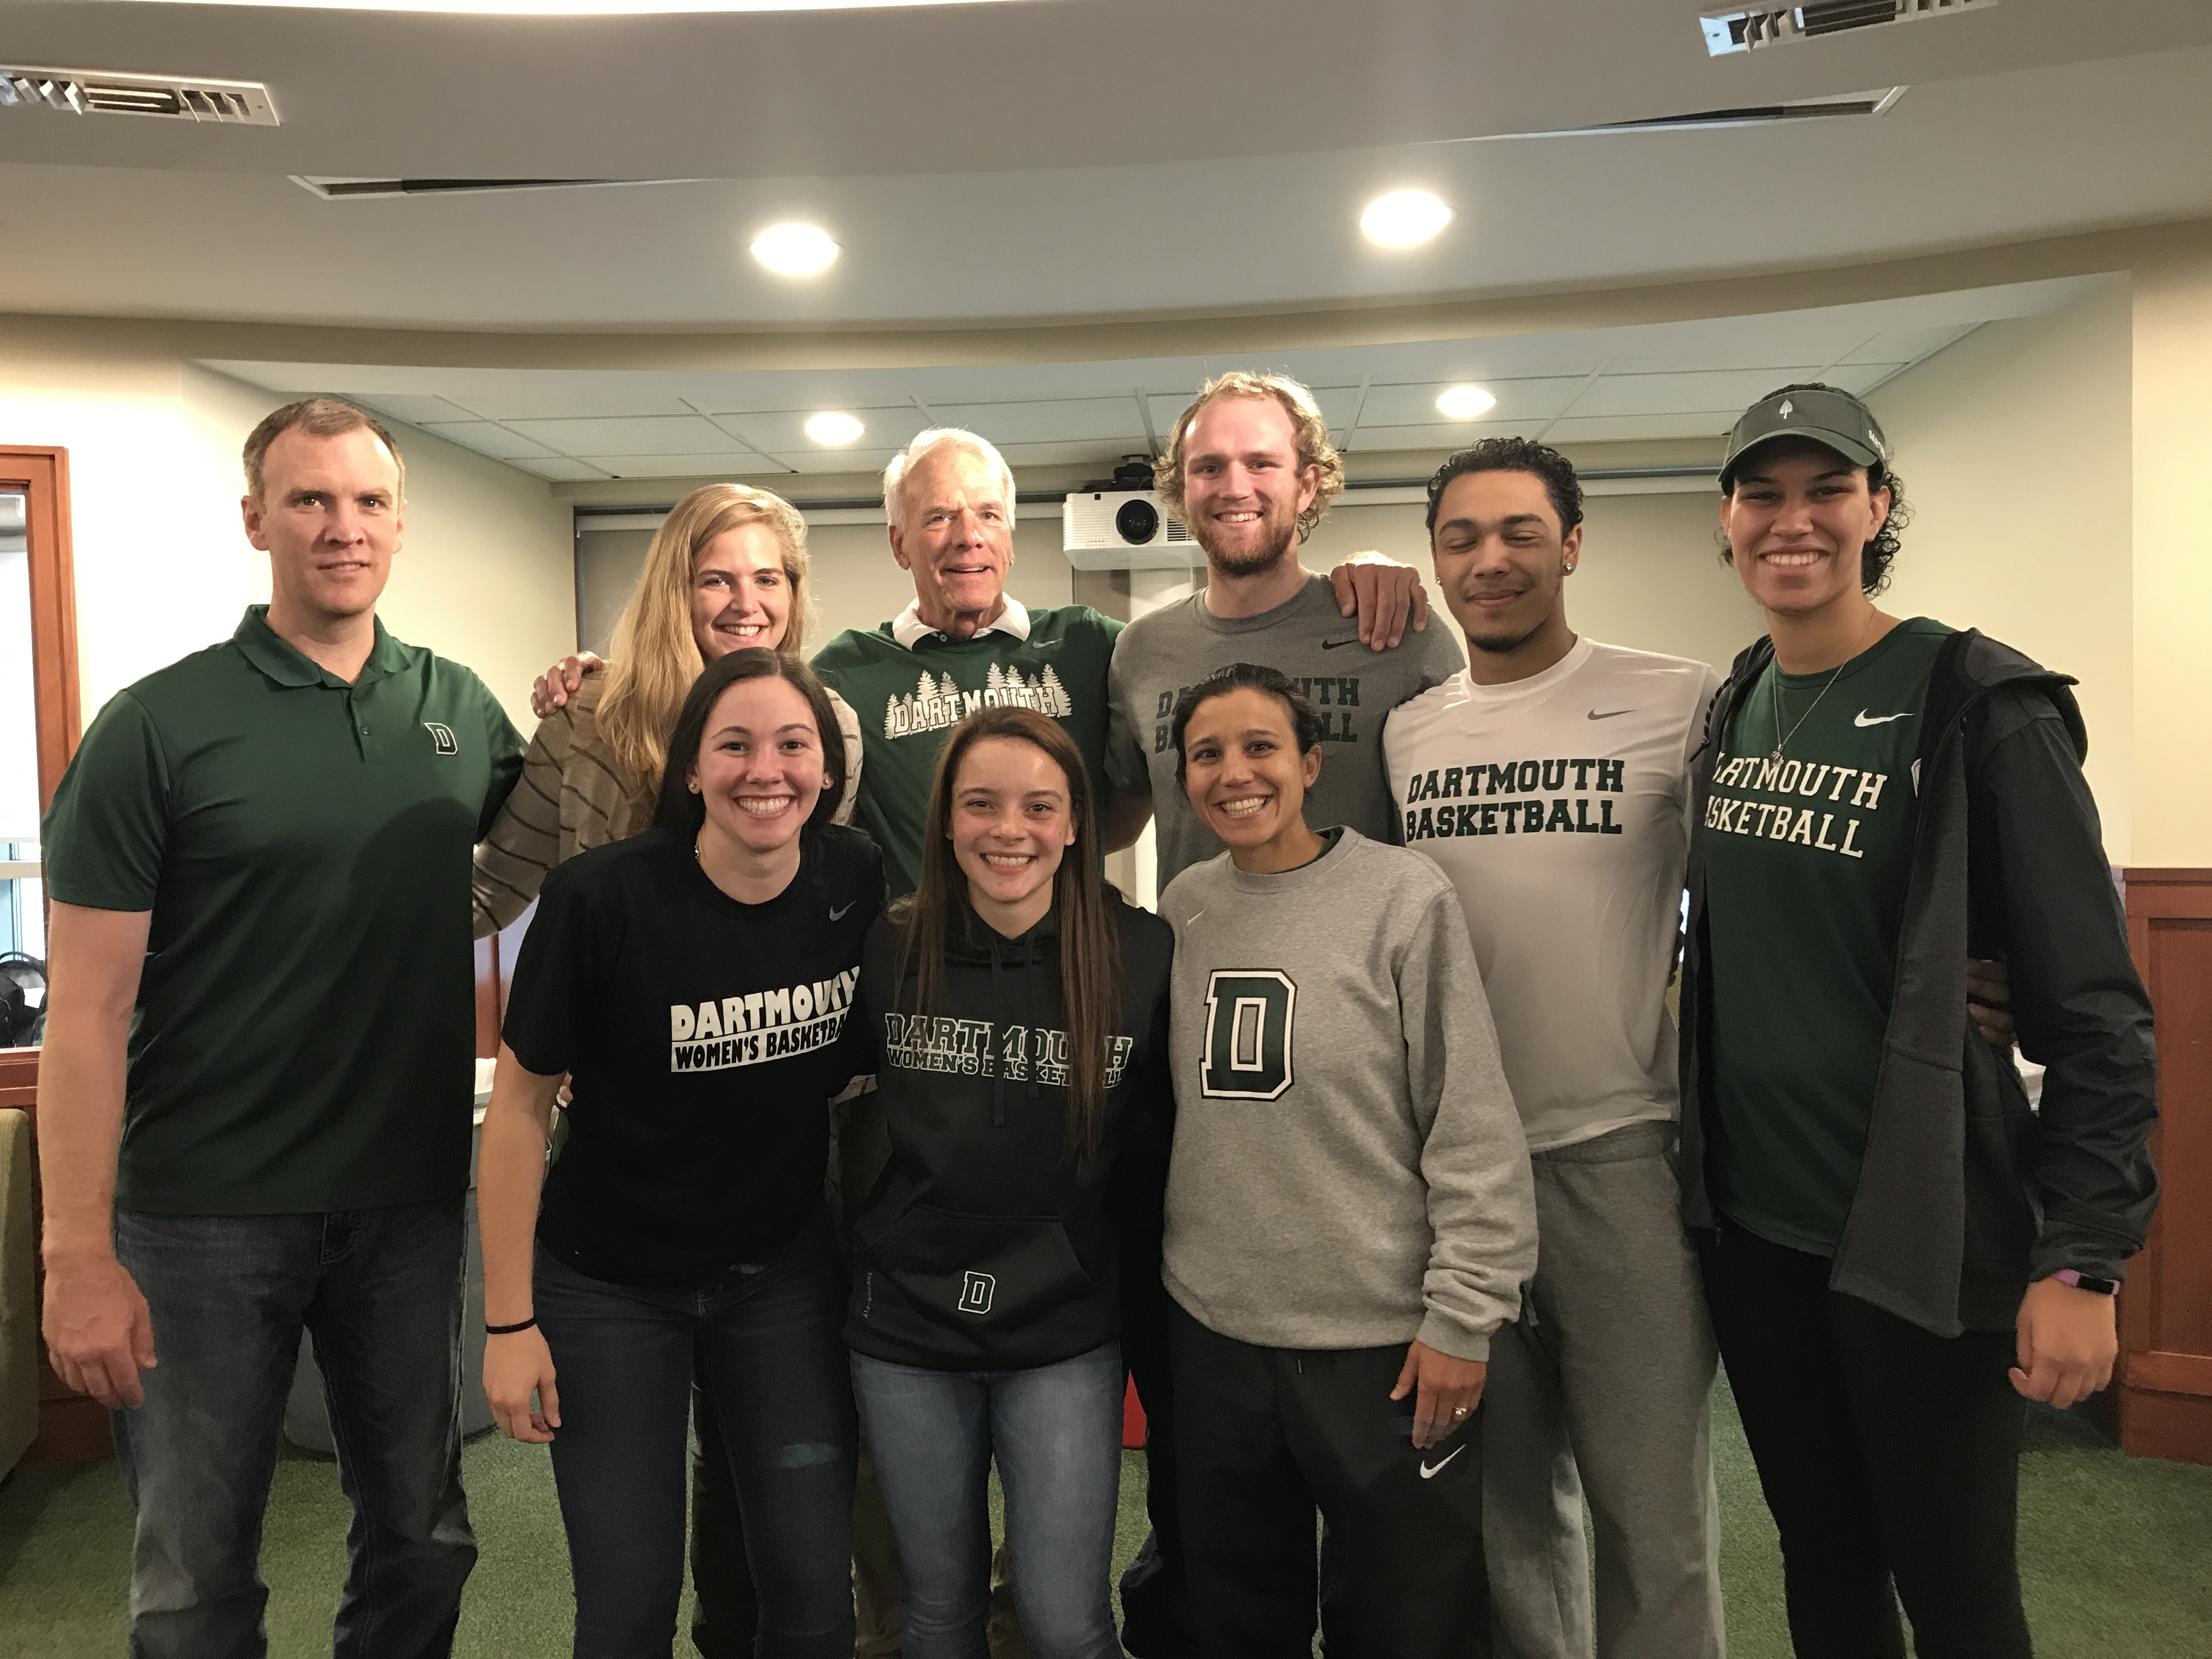 Basketball connections event